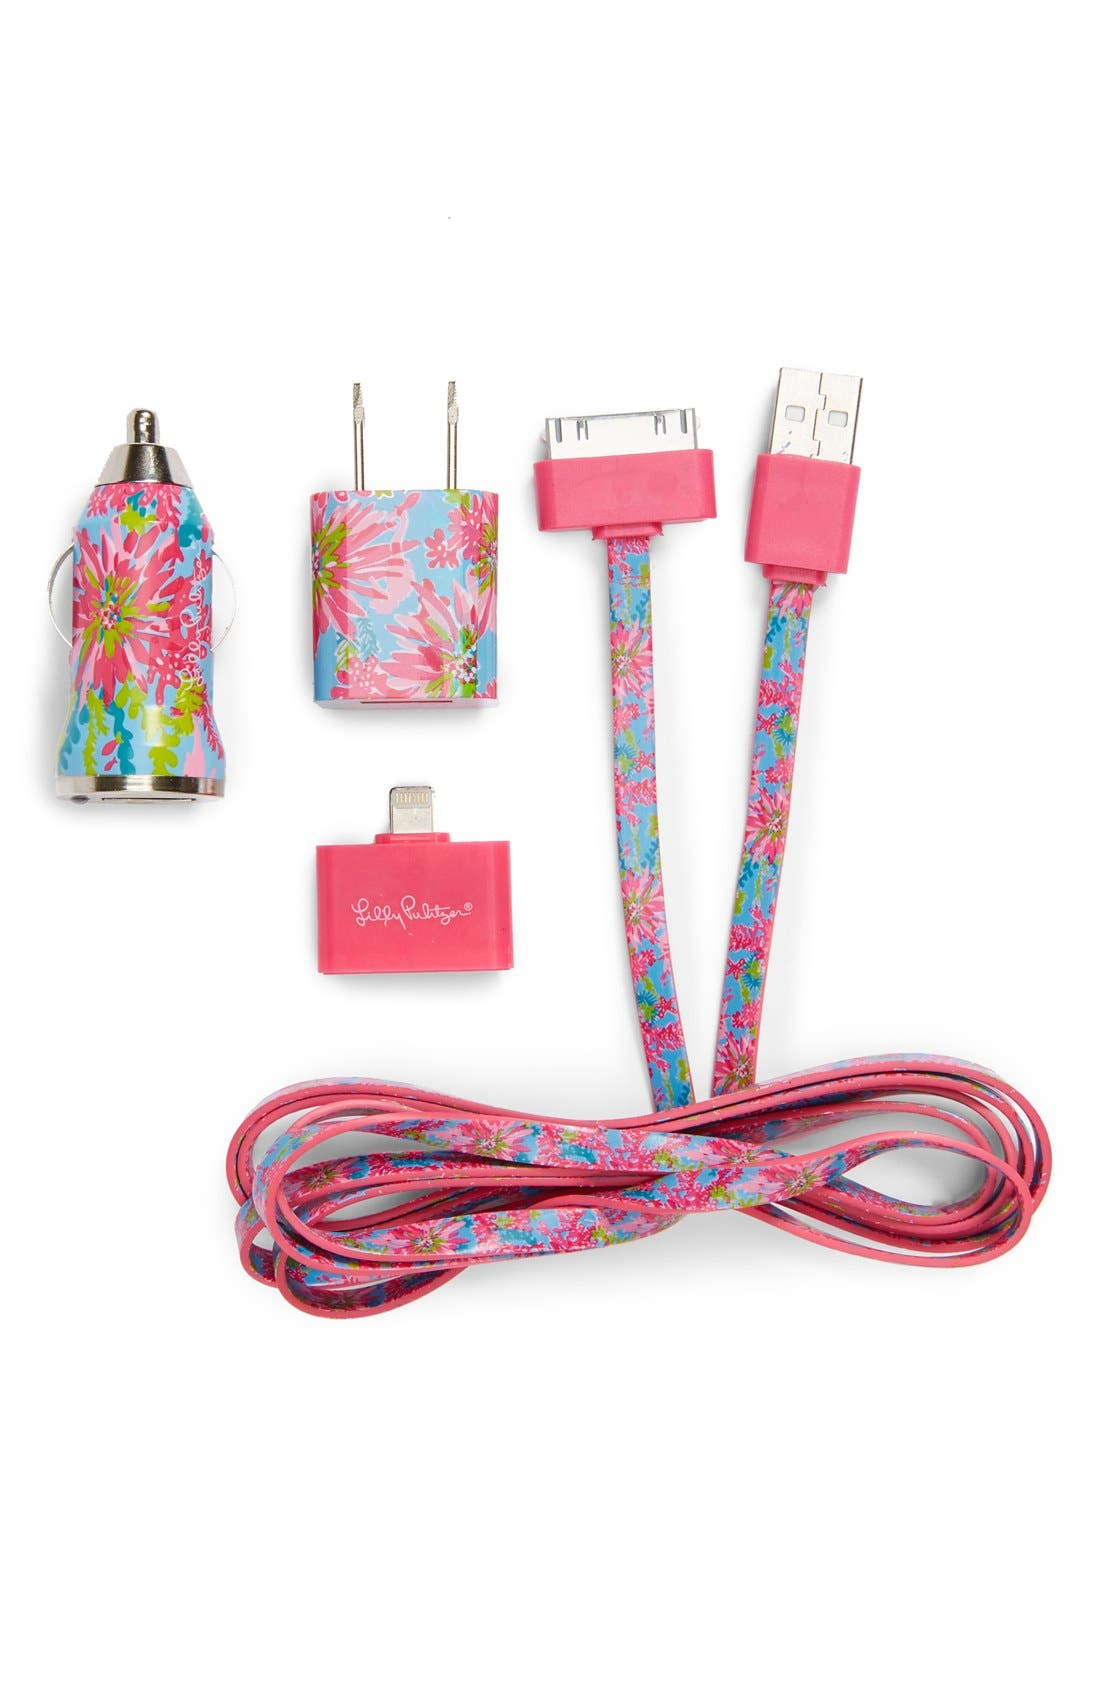 Main Image - Lilly Pulitzer® 'Trippin & Sippin' iPhone Charging Kit